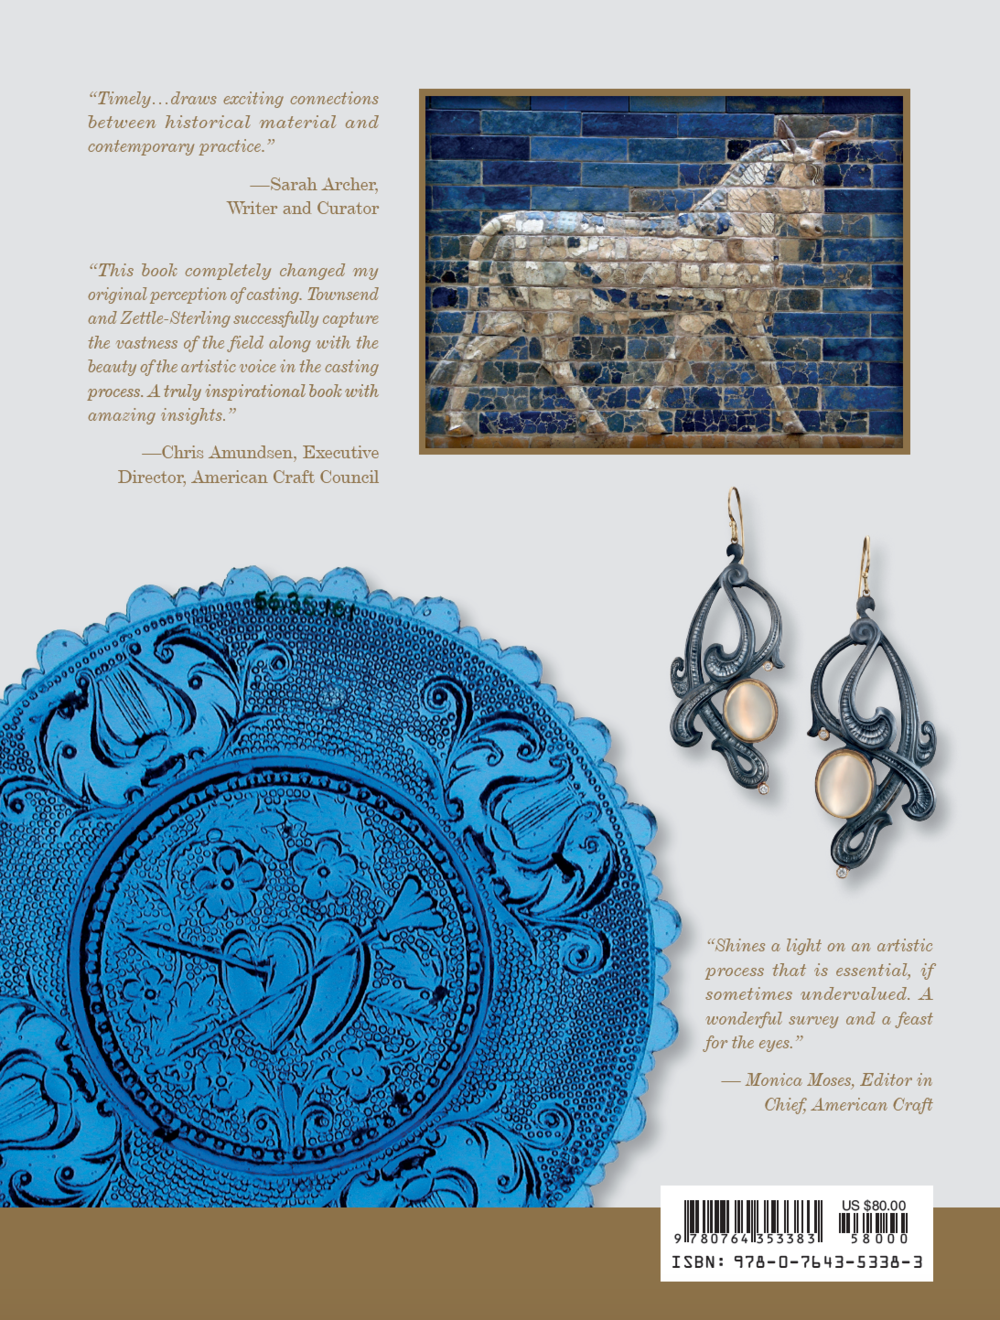 "Back of dust jacket. Top Detail: Bas relief bull from the Ishtar Gate. Photo: © Josep Renalias, Pergamon Museum, Berlin / Wikimedia Commons / CC by 3.0. Center Right: David Giulietti, Moon Curve Earrings, 2014. Sterling silver, 18K, 22K, diamonds, moonstone, 3"" × 1.4"" × 0.38"". Photo: Hap Sakwa. Bottom Left: Cup Plate, Boston and Sandwich Glass Factory, ca. 1830s. Sandwich, Massachusetts, USA, pressed sapphire glass, 3.5"". Courtesy of LACMA, Gift of the Reverend W. Daniel Quattlebaum in memory of Edith Brockett Quattlebaum, www.lacma.org, LACMA public domain."